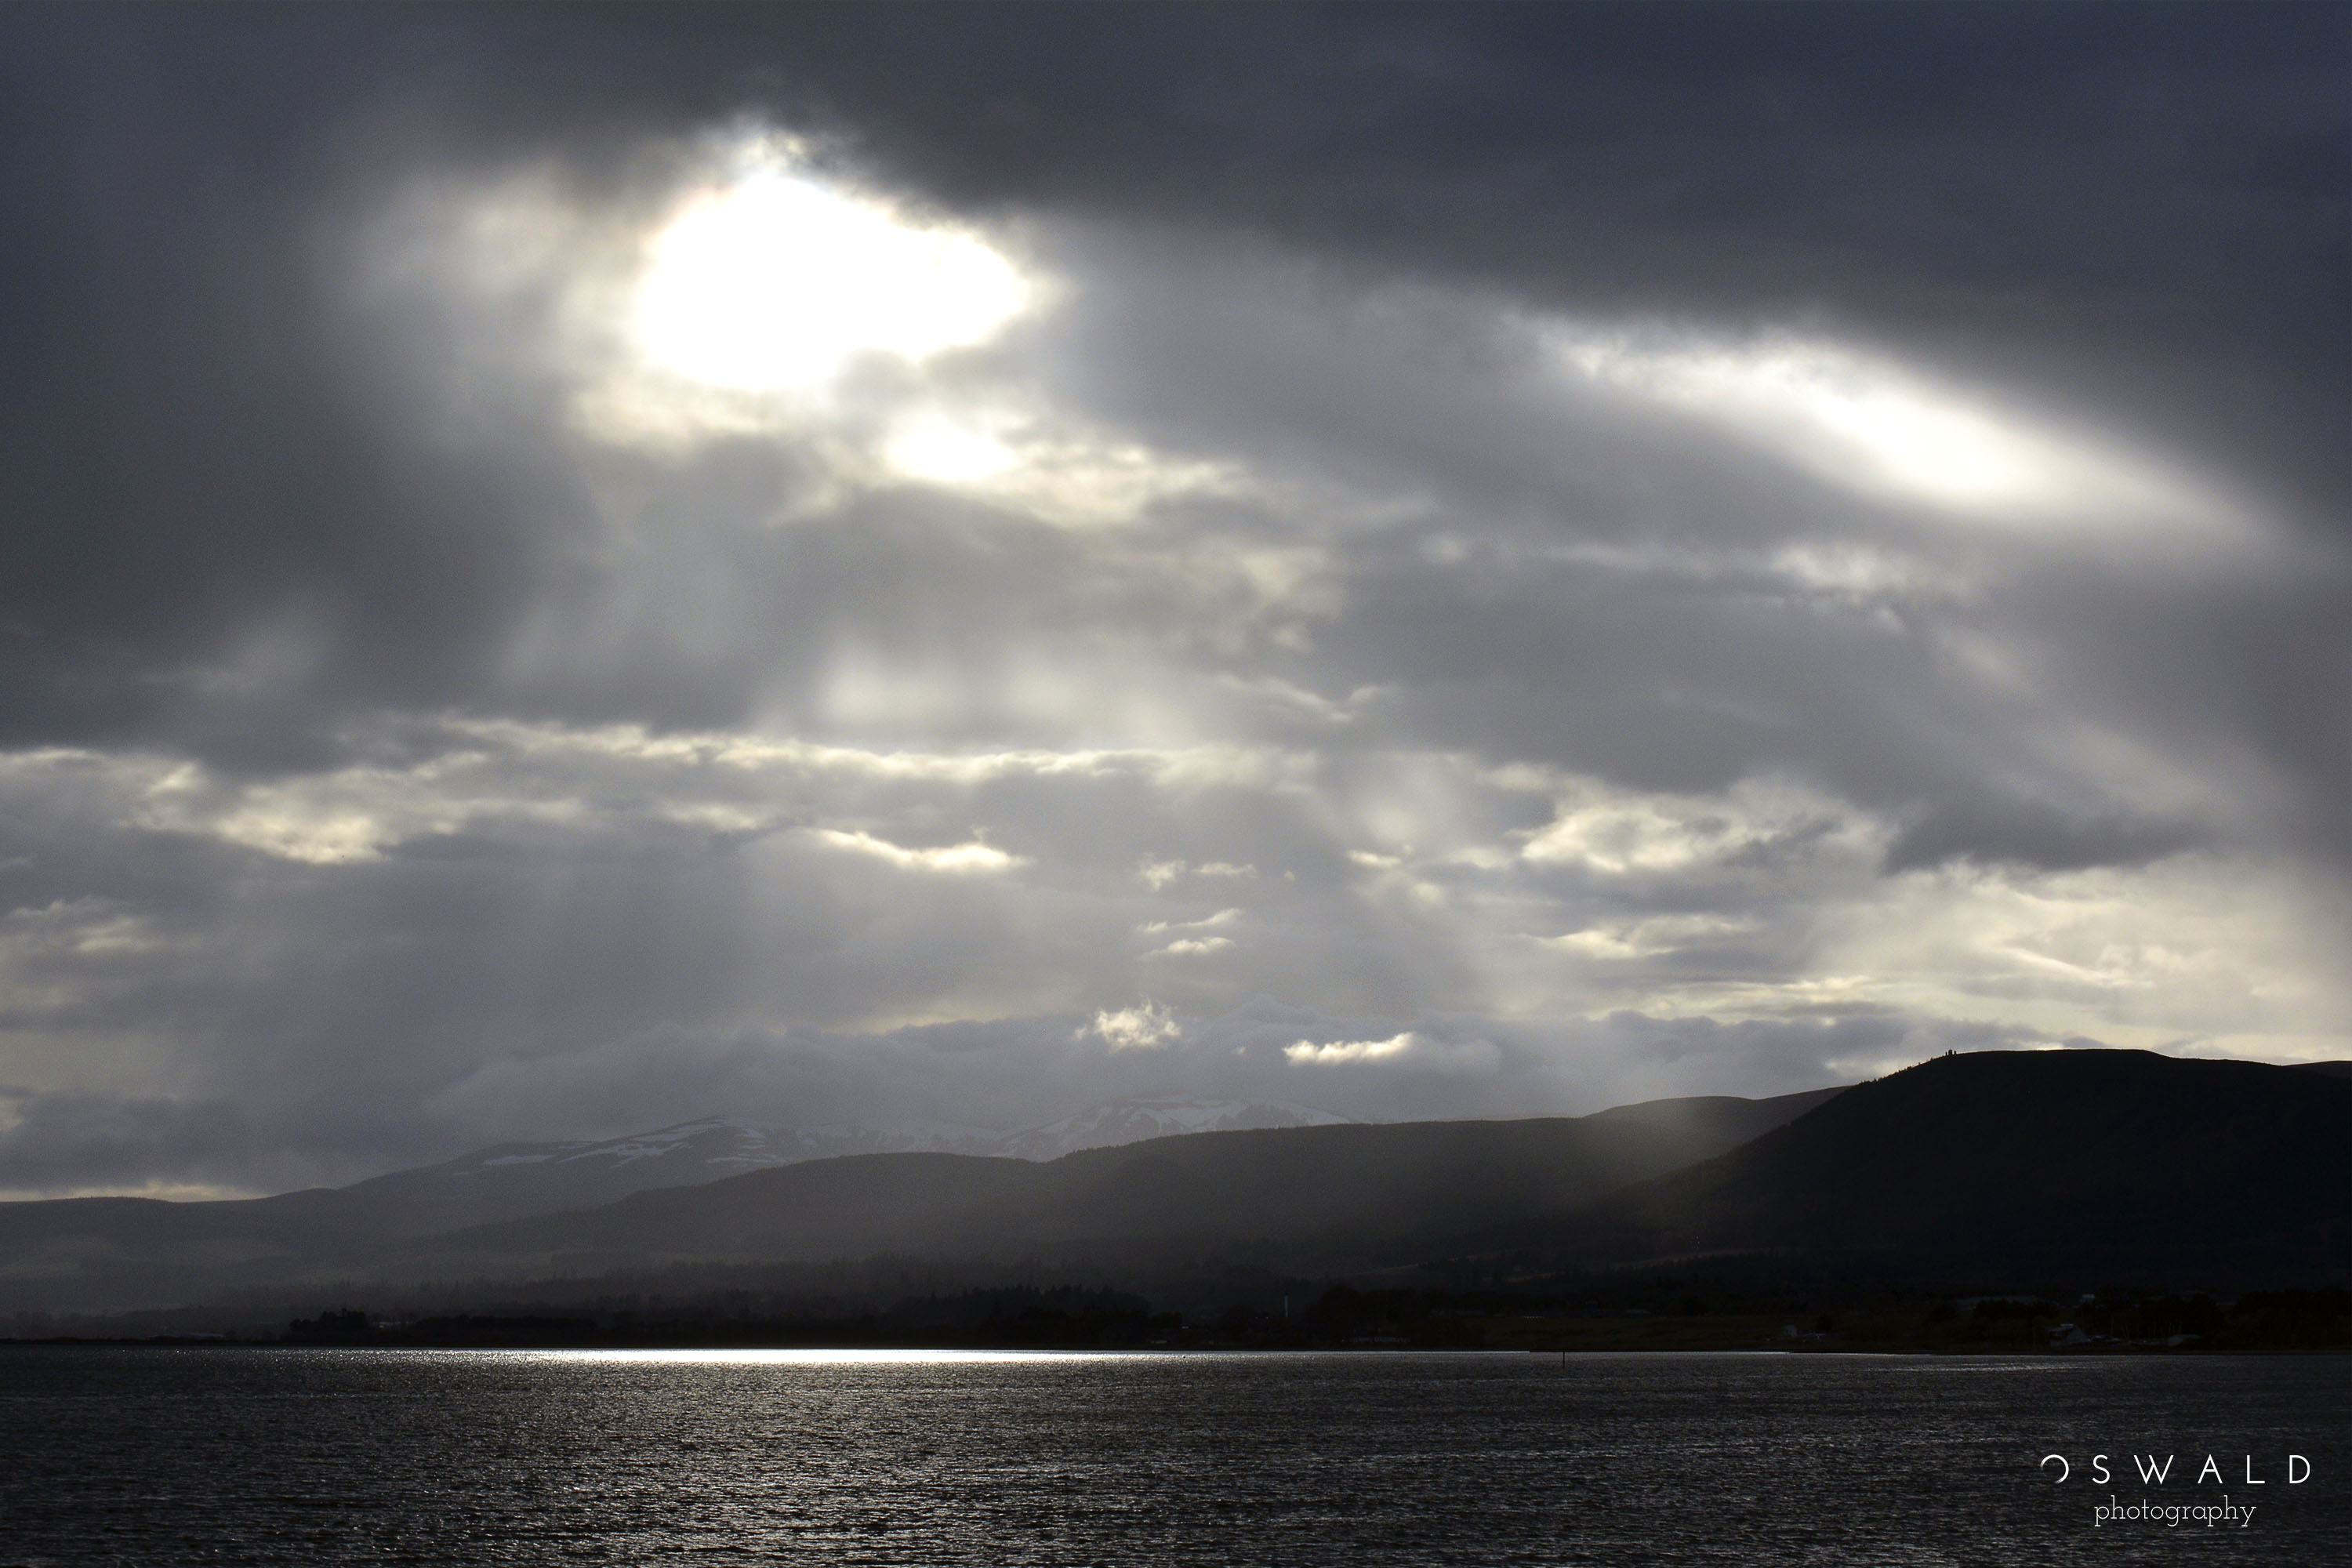 Rays of sun shoot through the afternoon clouds that cover Alness Bay in Scotland.